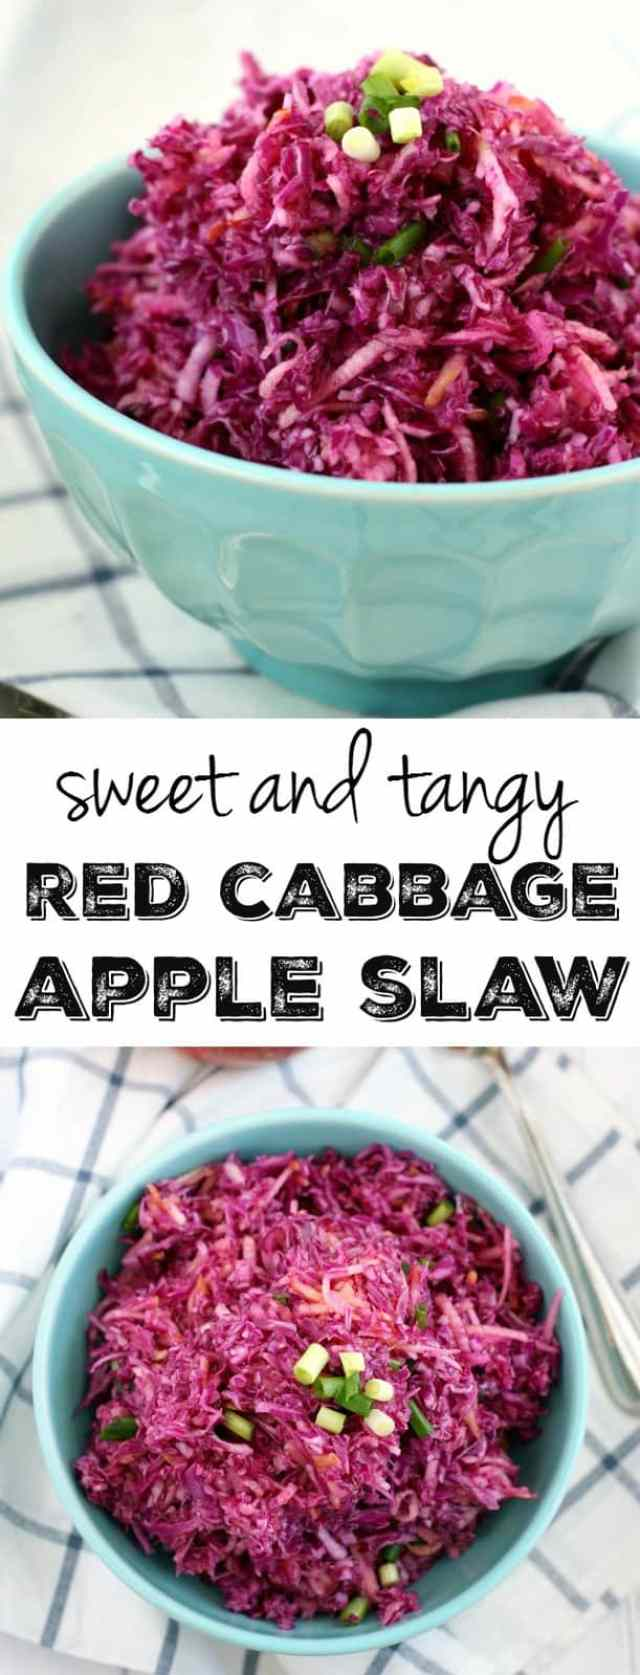 Sweet, tangy, crunchy, healthy, tasty red cabbage slaw! This is SUCH an EASY side dish and everyone loves it. Gluten free and vegan recipe.